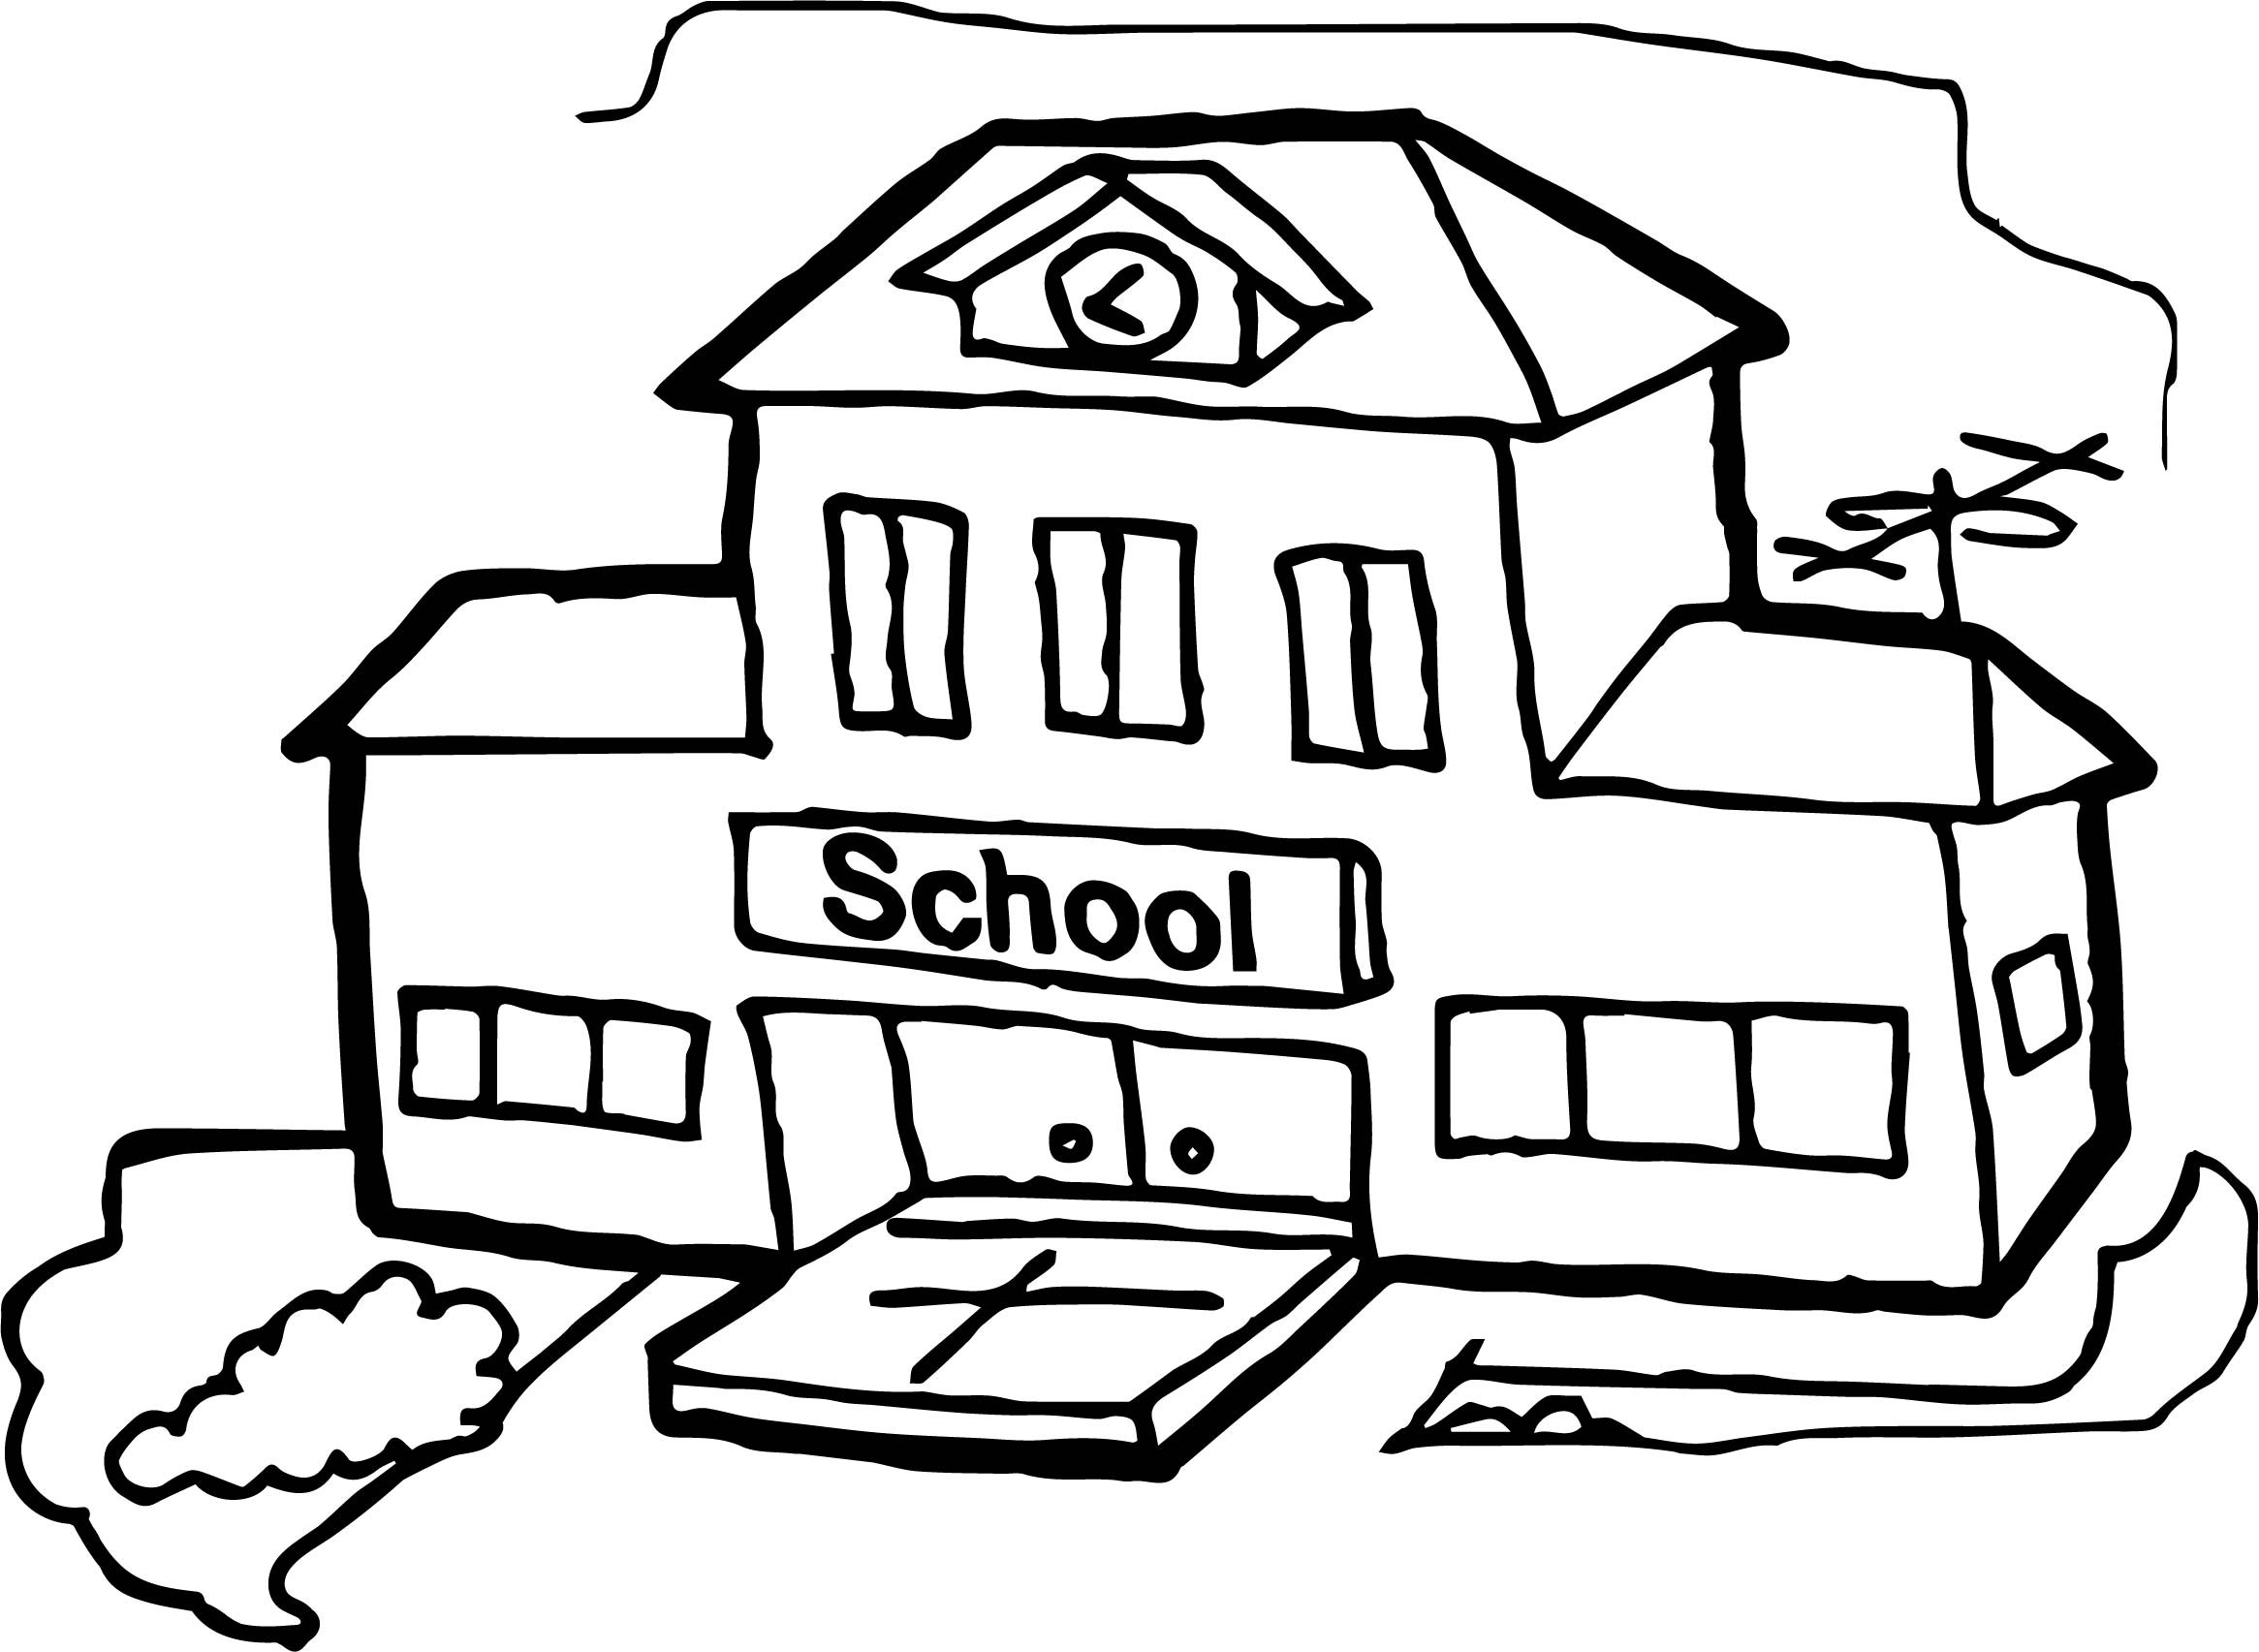 coloring pictures school simple school drawing free download on clipartmag coloring pictures school